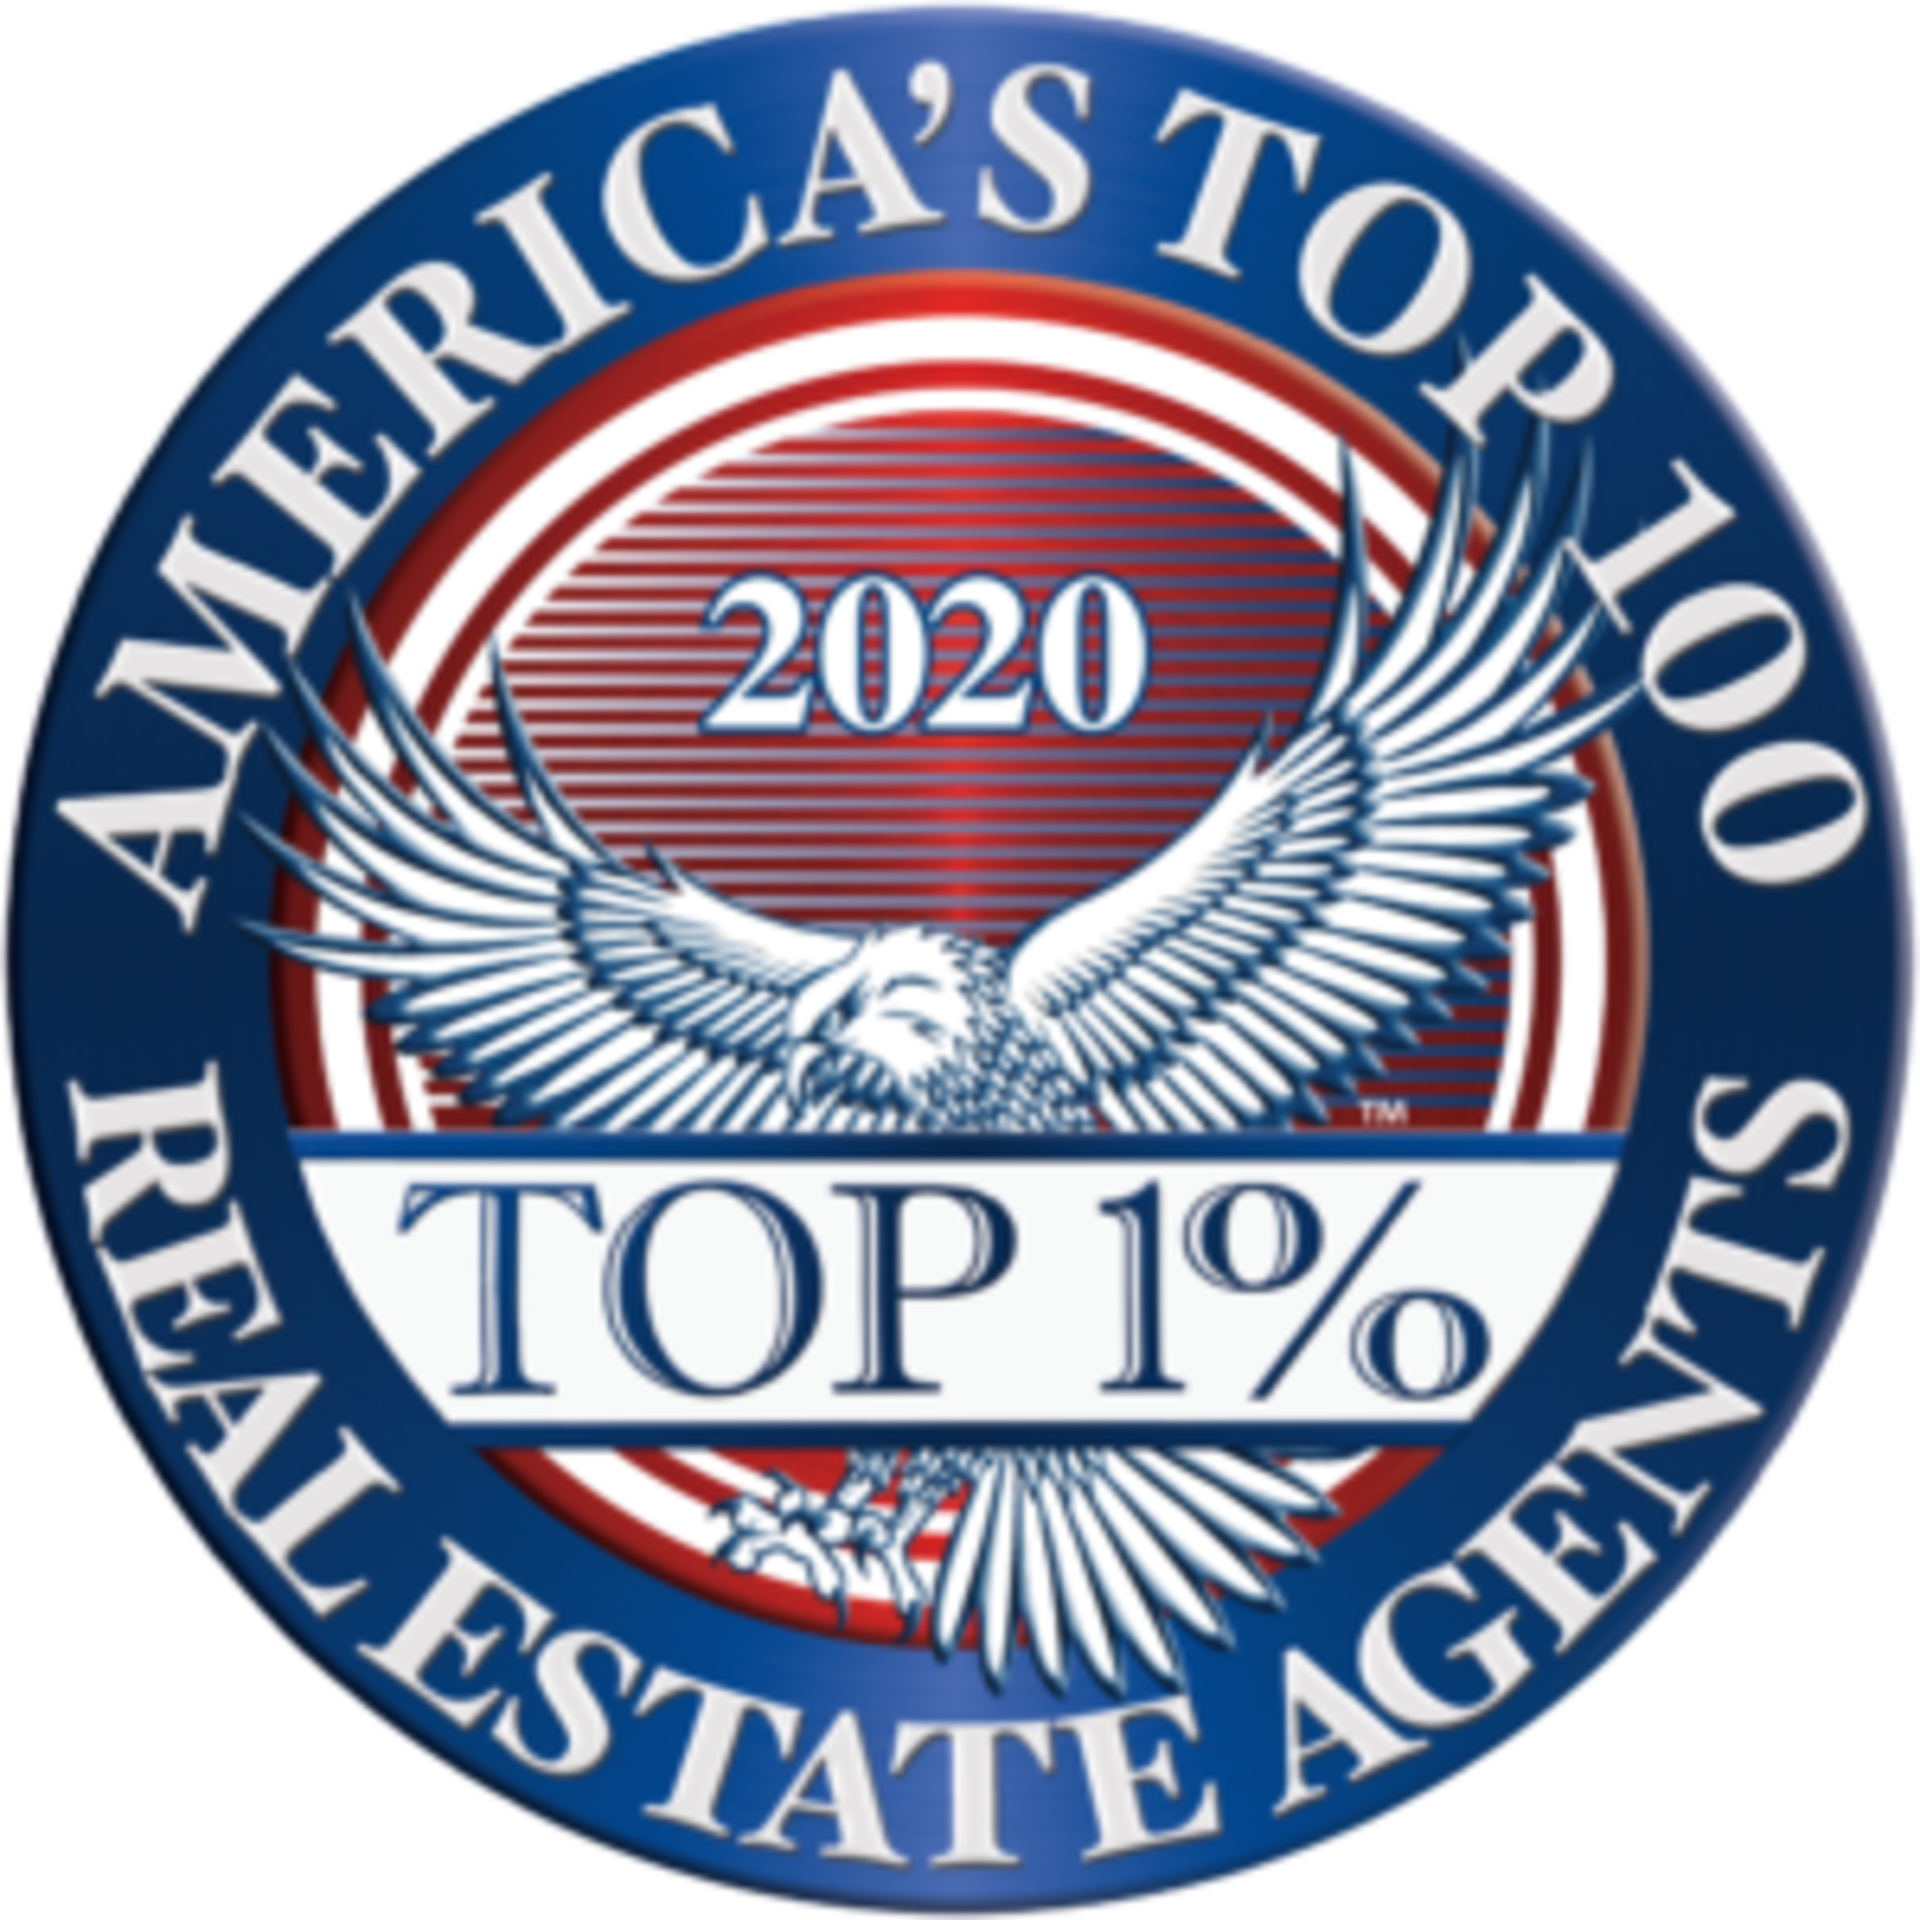 Paul Jamison Once Again Earns America's Top 100 Real Estate Agents® Distinction